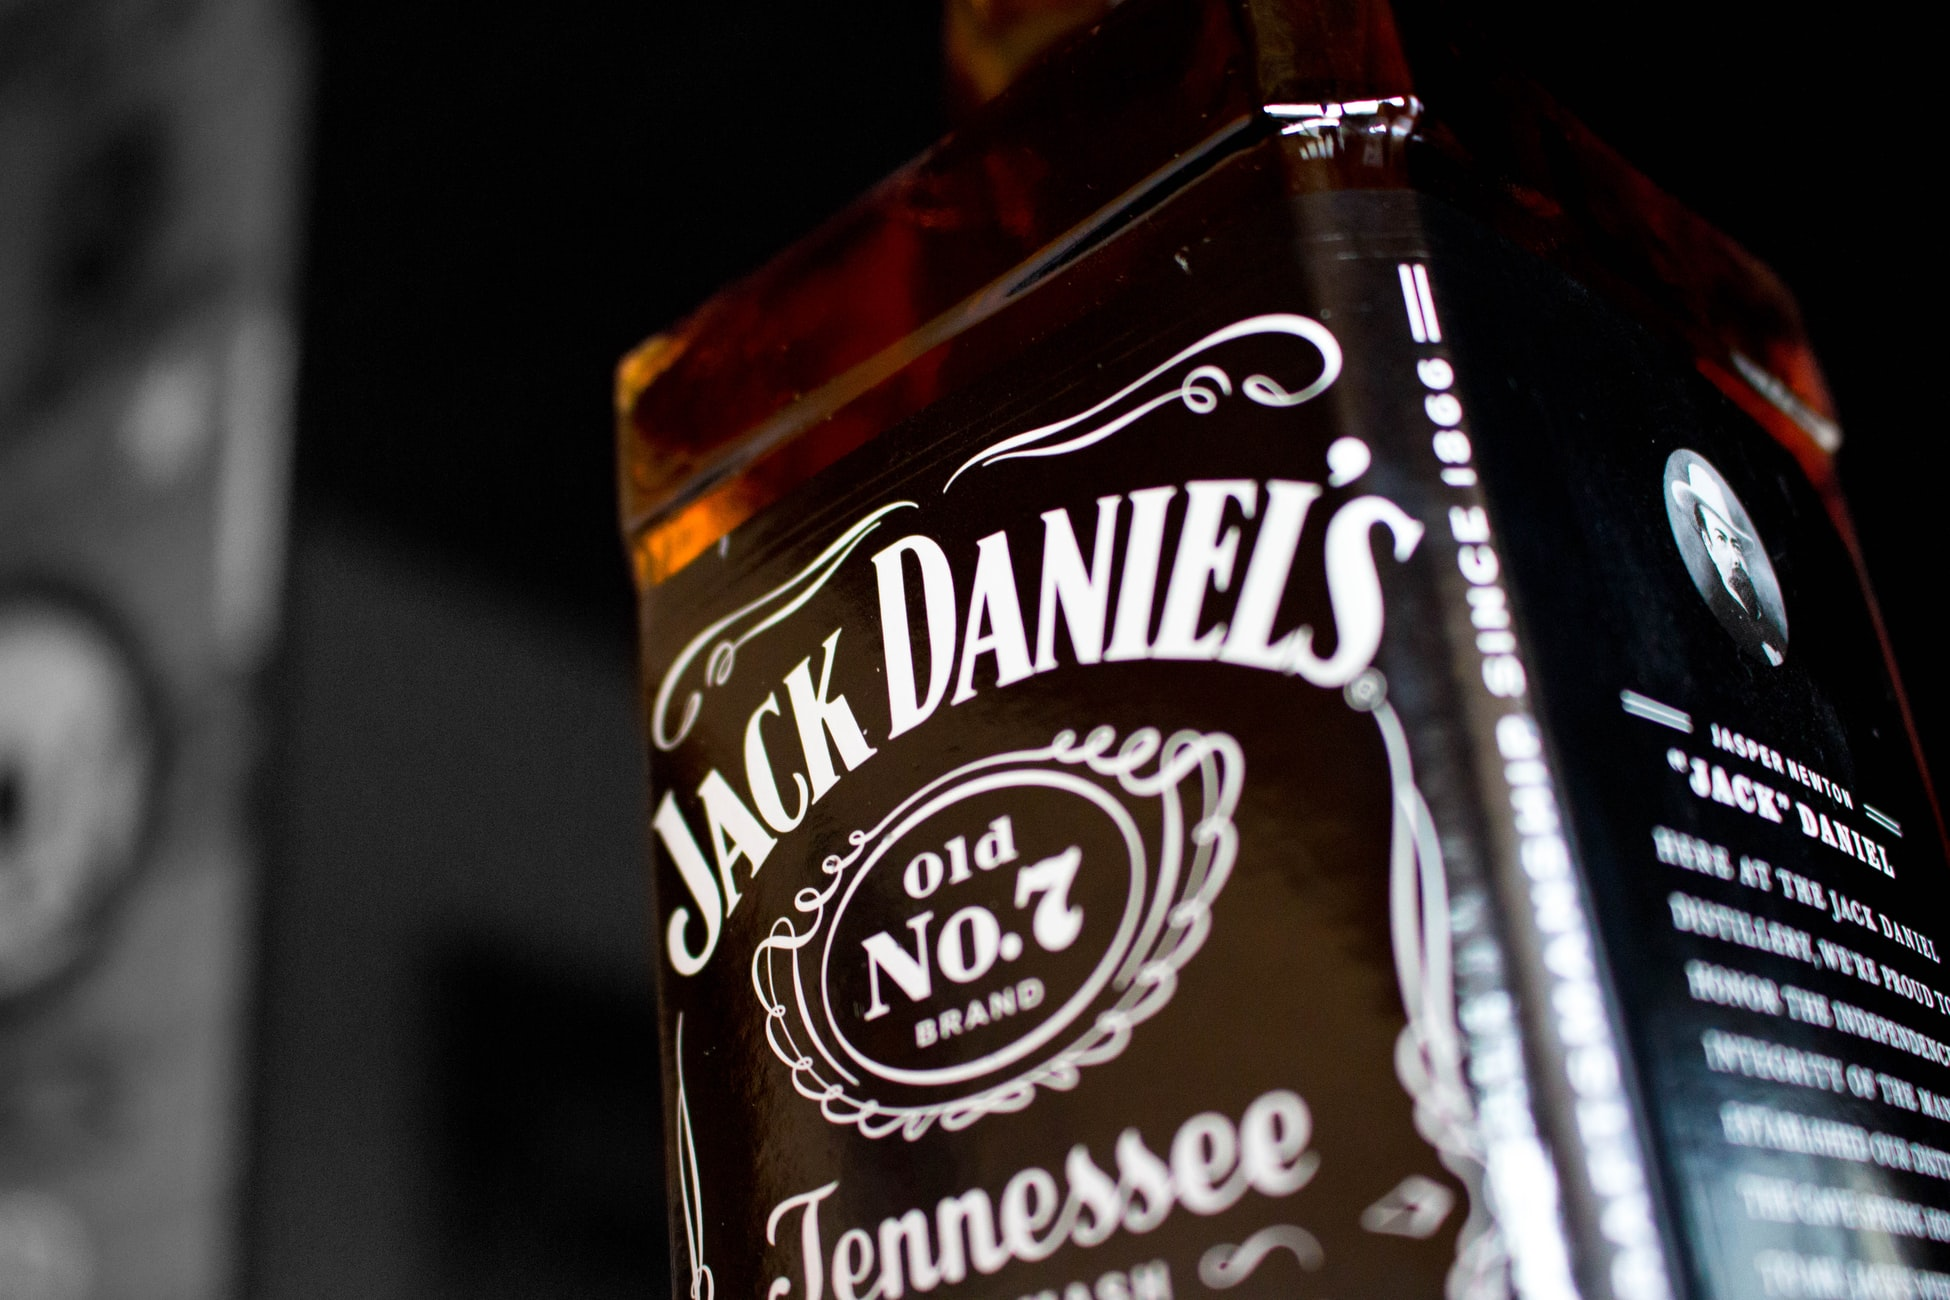 A bottle of Jack Daniel's Tennessee Whiskey.